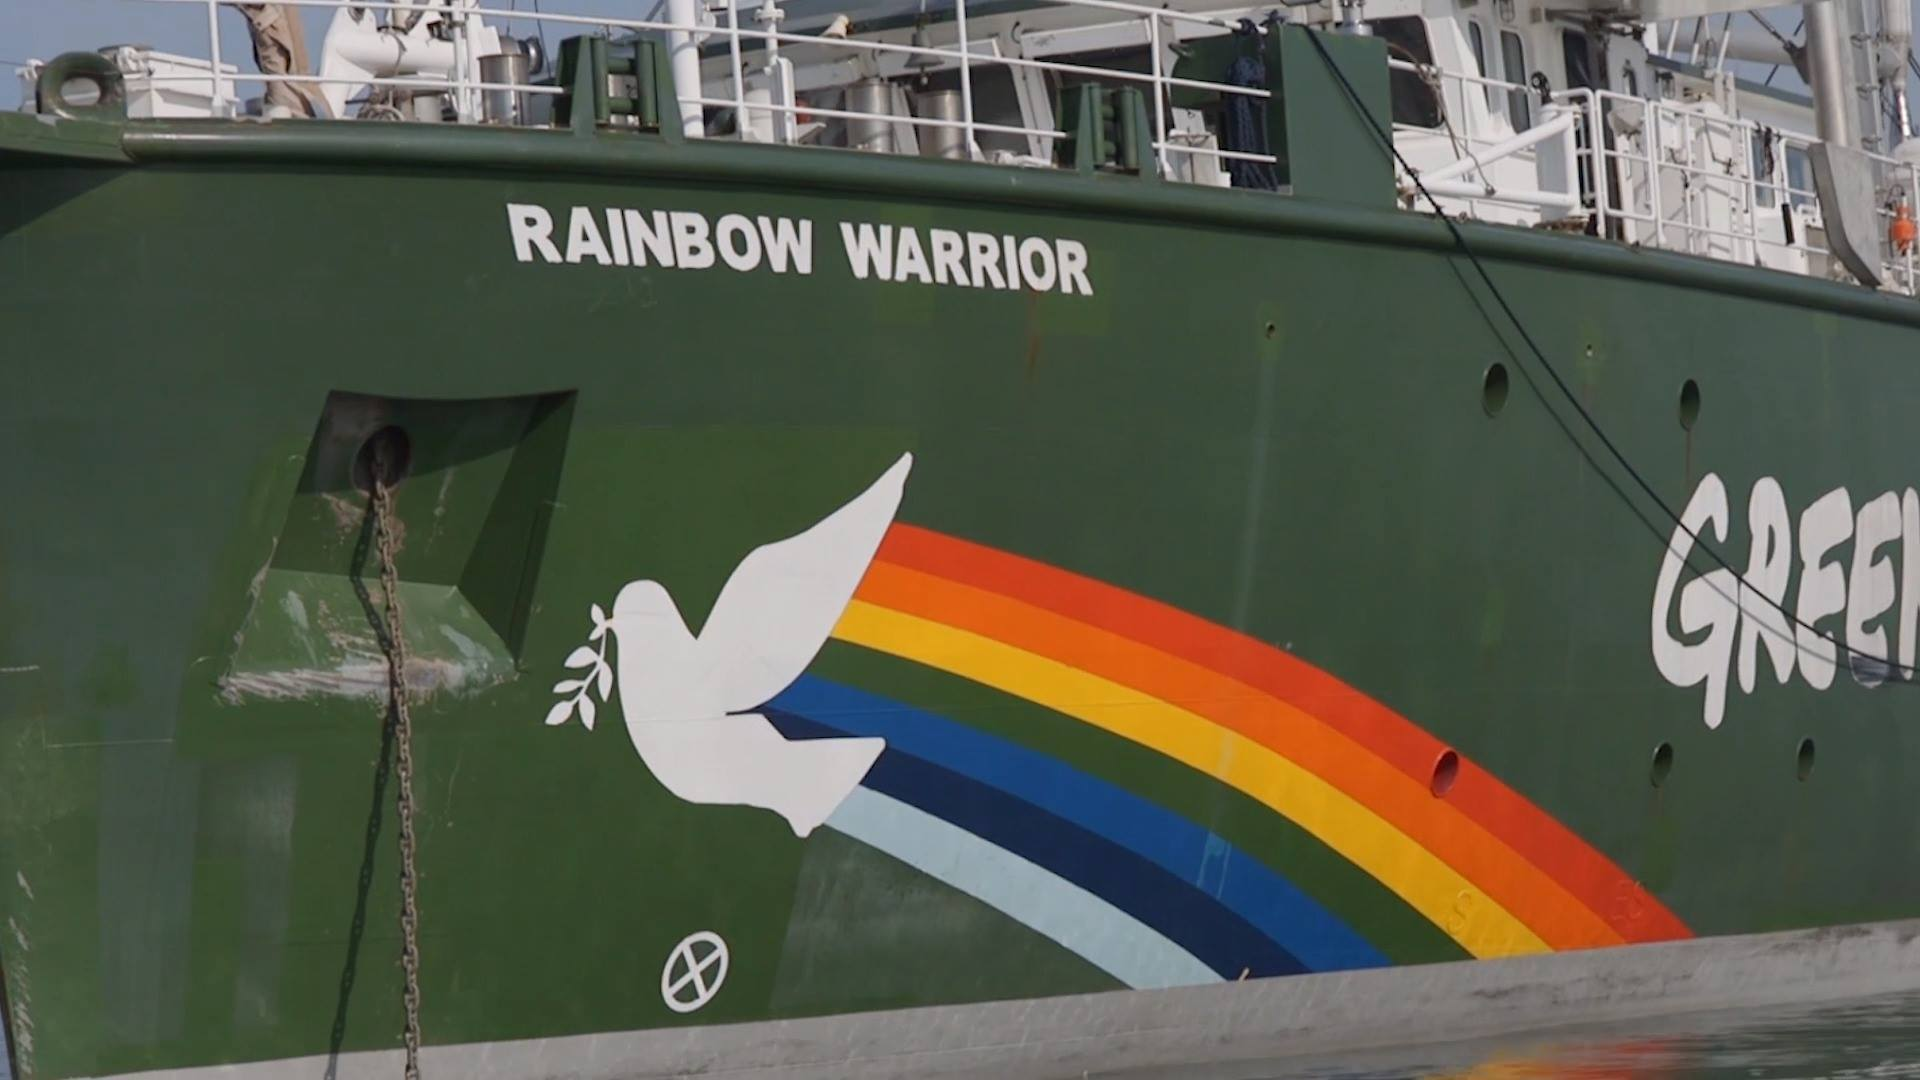 Rainbow Warrior is coming back!